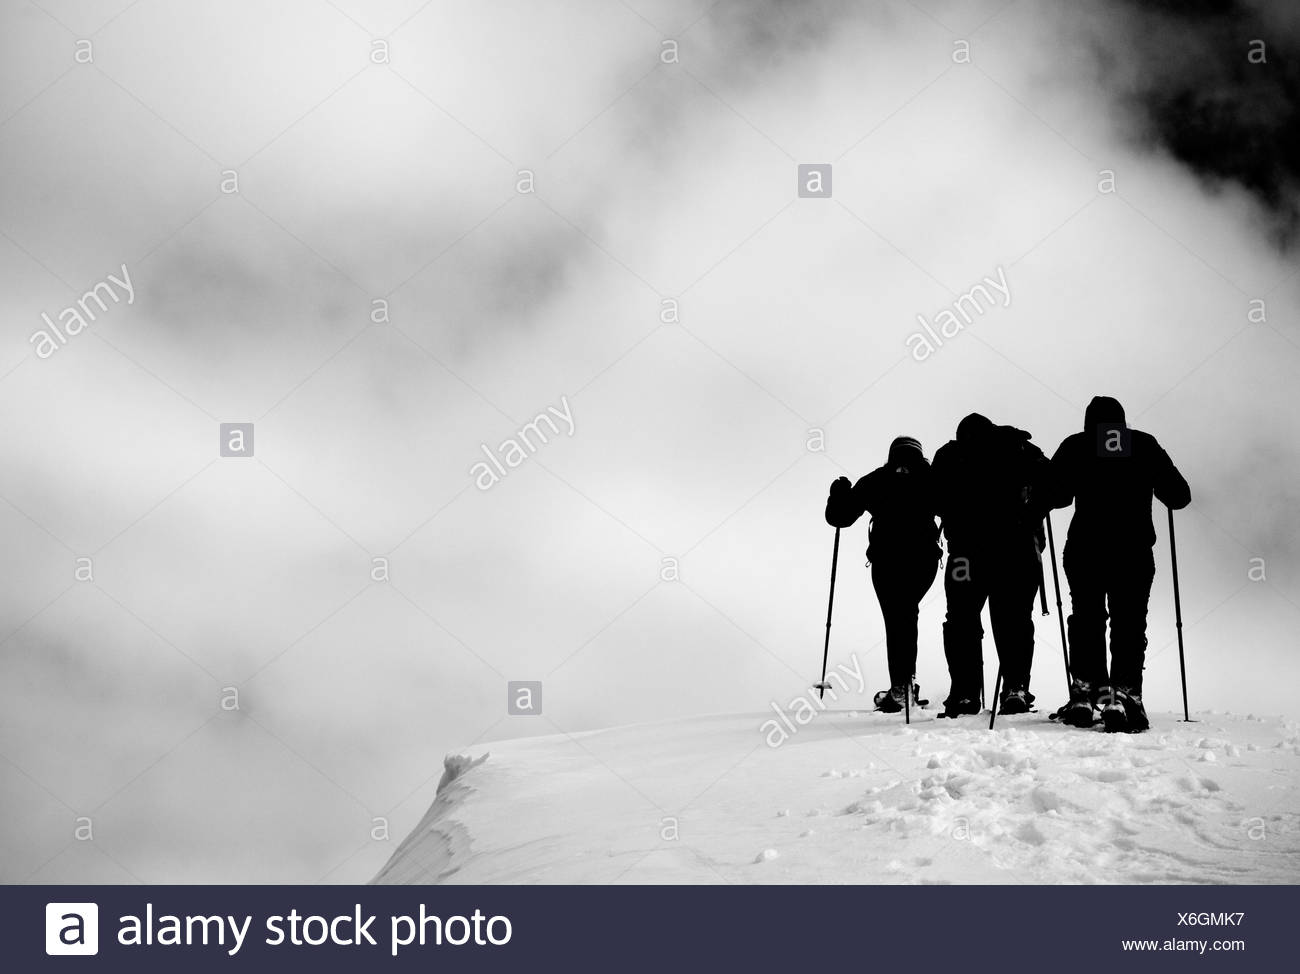 A group out snow shoeing on an overcast day. - Stock Image